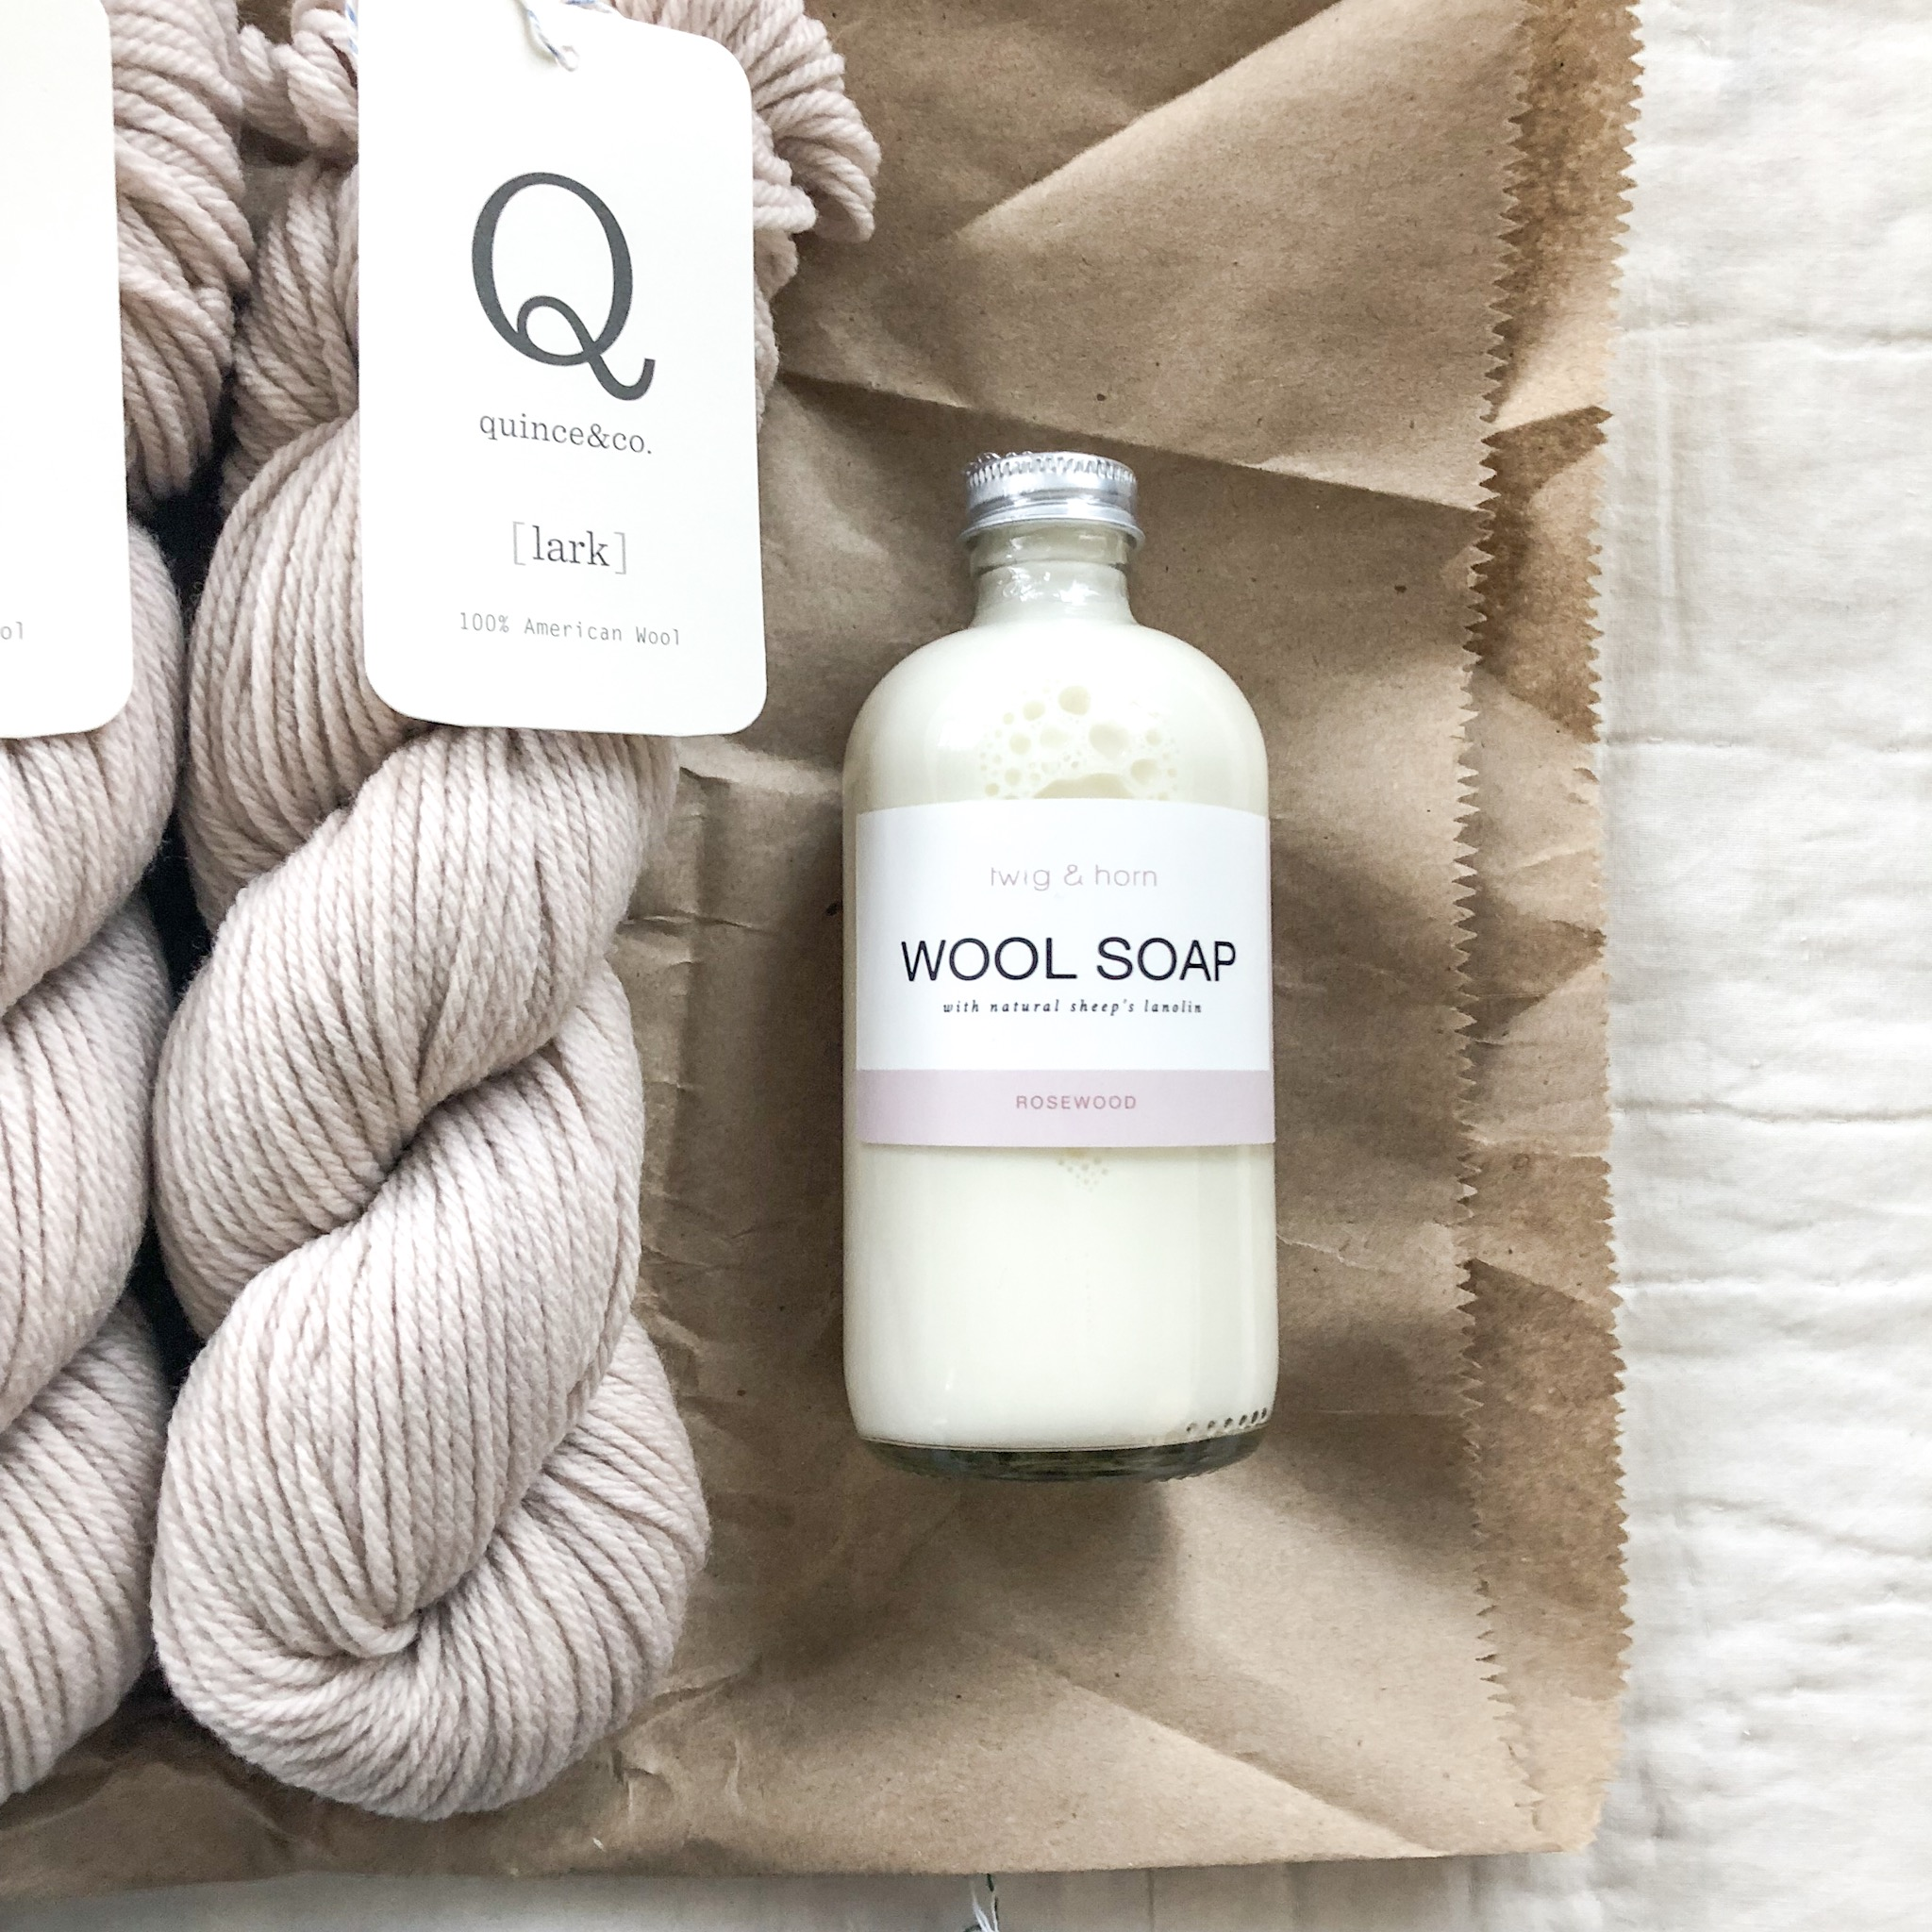 Twig & Horn Wool Soap in Rosewood